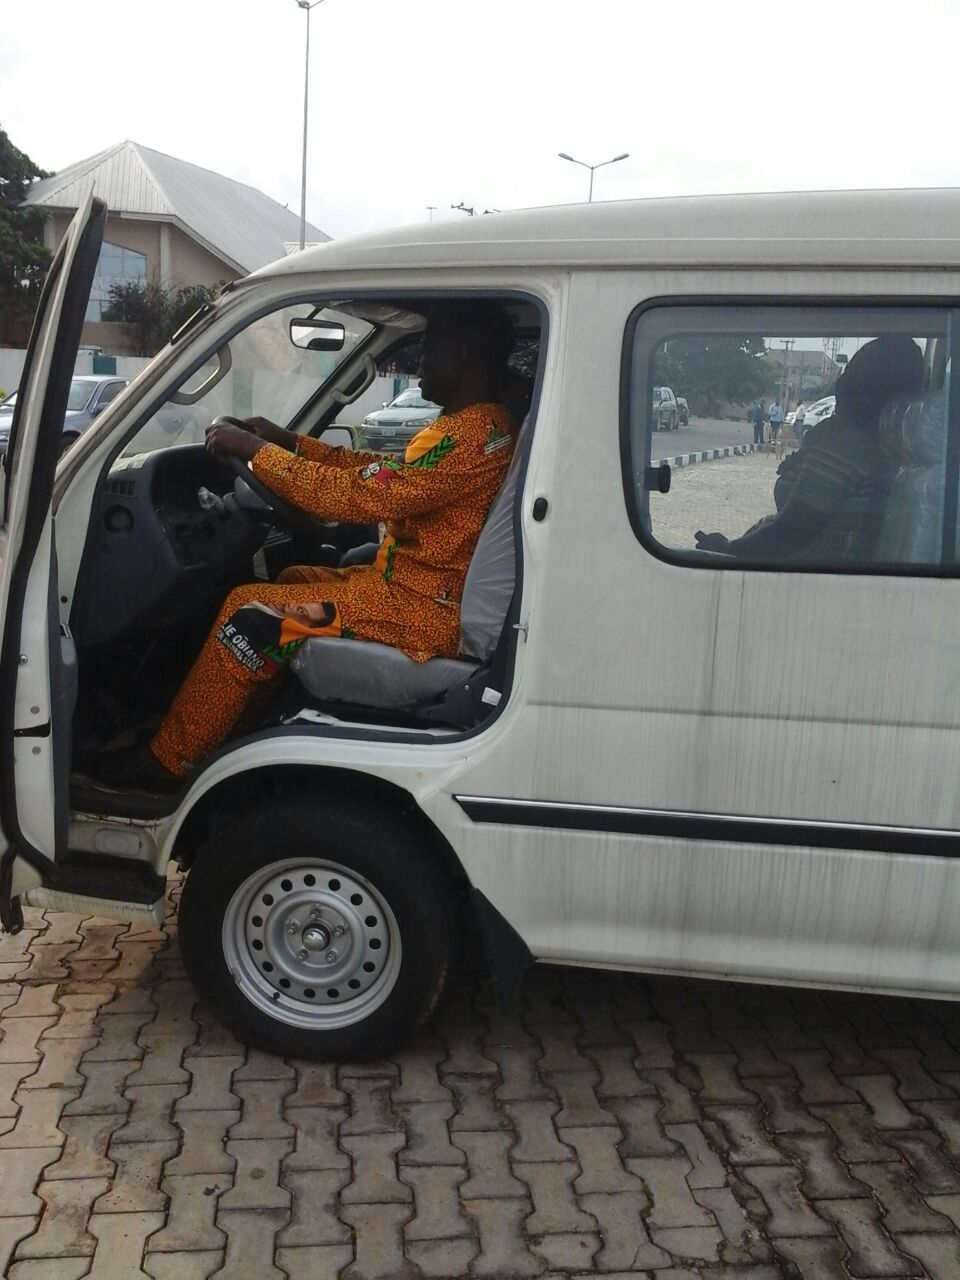 GOVERNOR WILLIE OBIANO DOONATES A BRAND NEW 18-SEATER BUS TO THE ENGINEERS IN AWKA